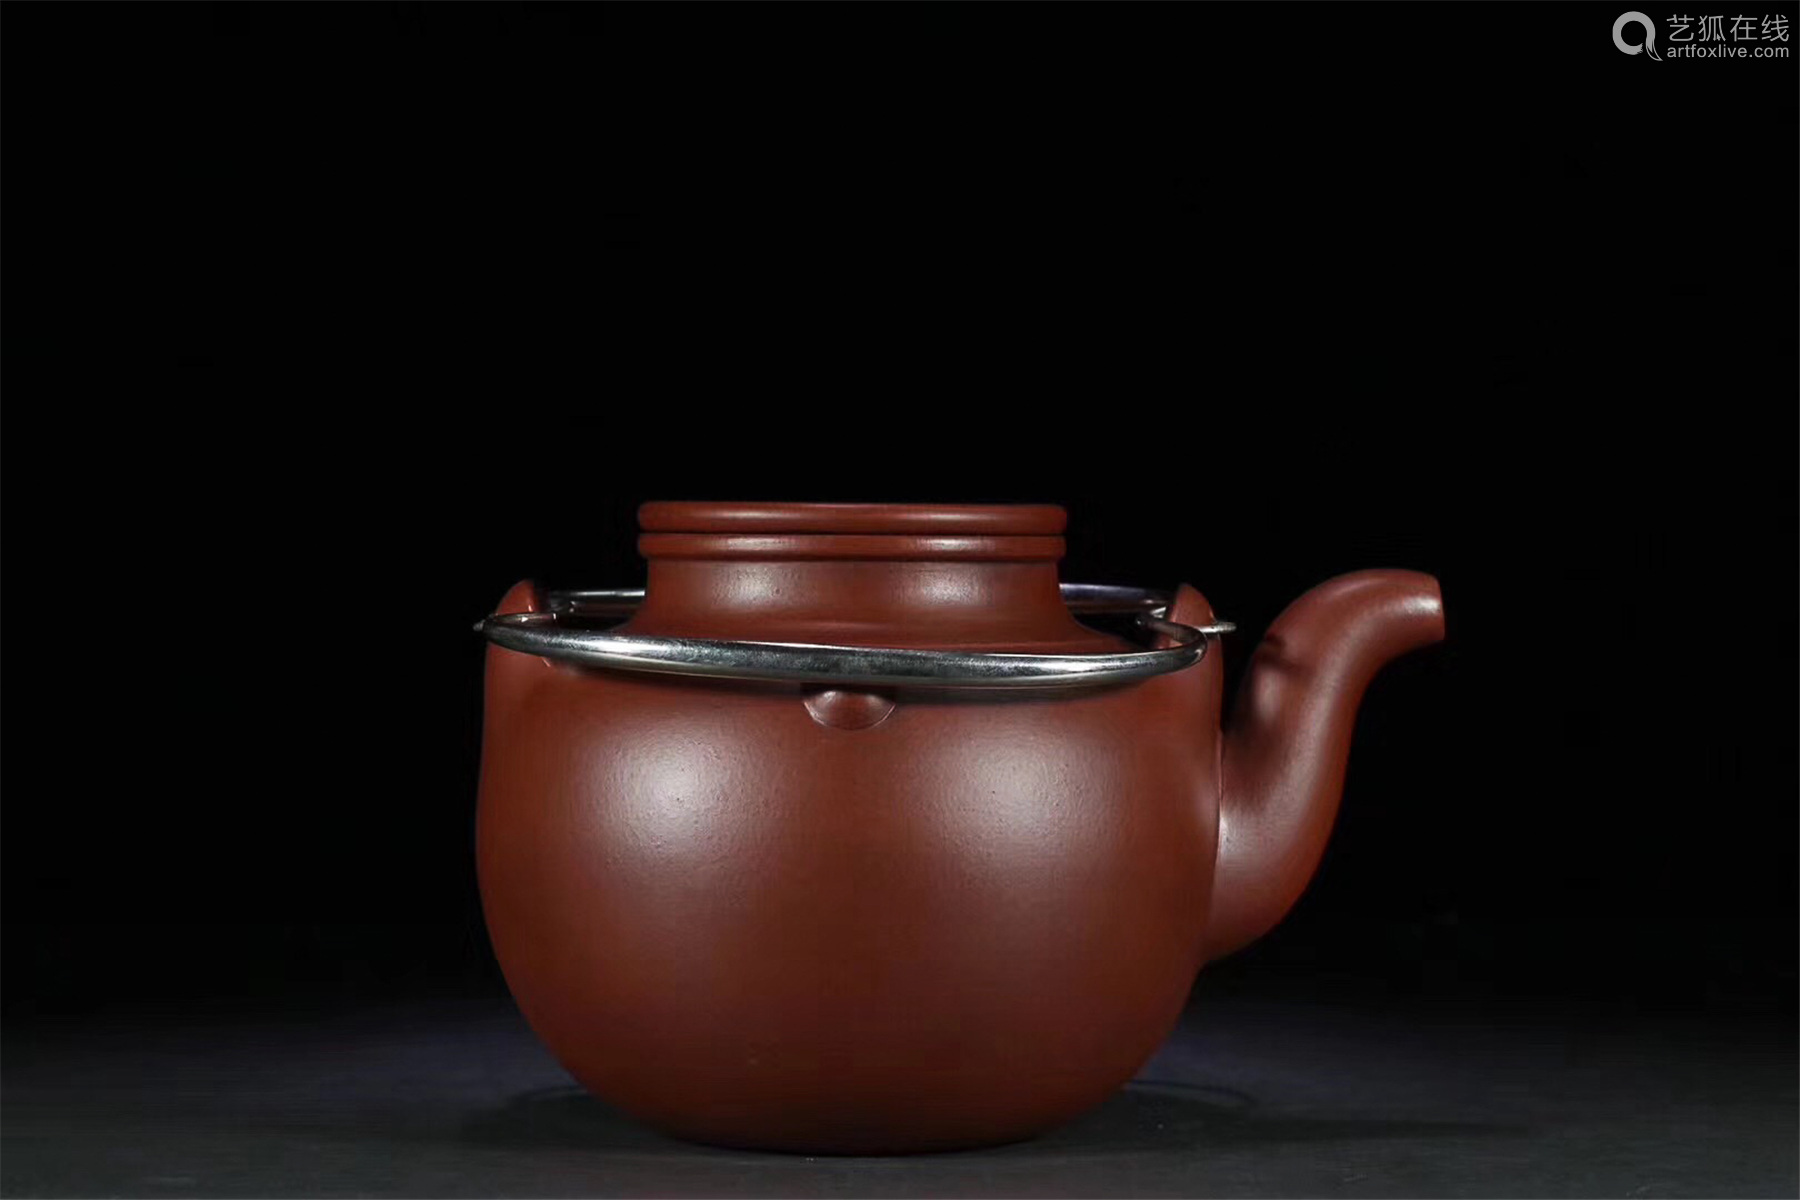 A SILVER HANDLE PURPLE CLAY TEAPOT